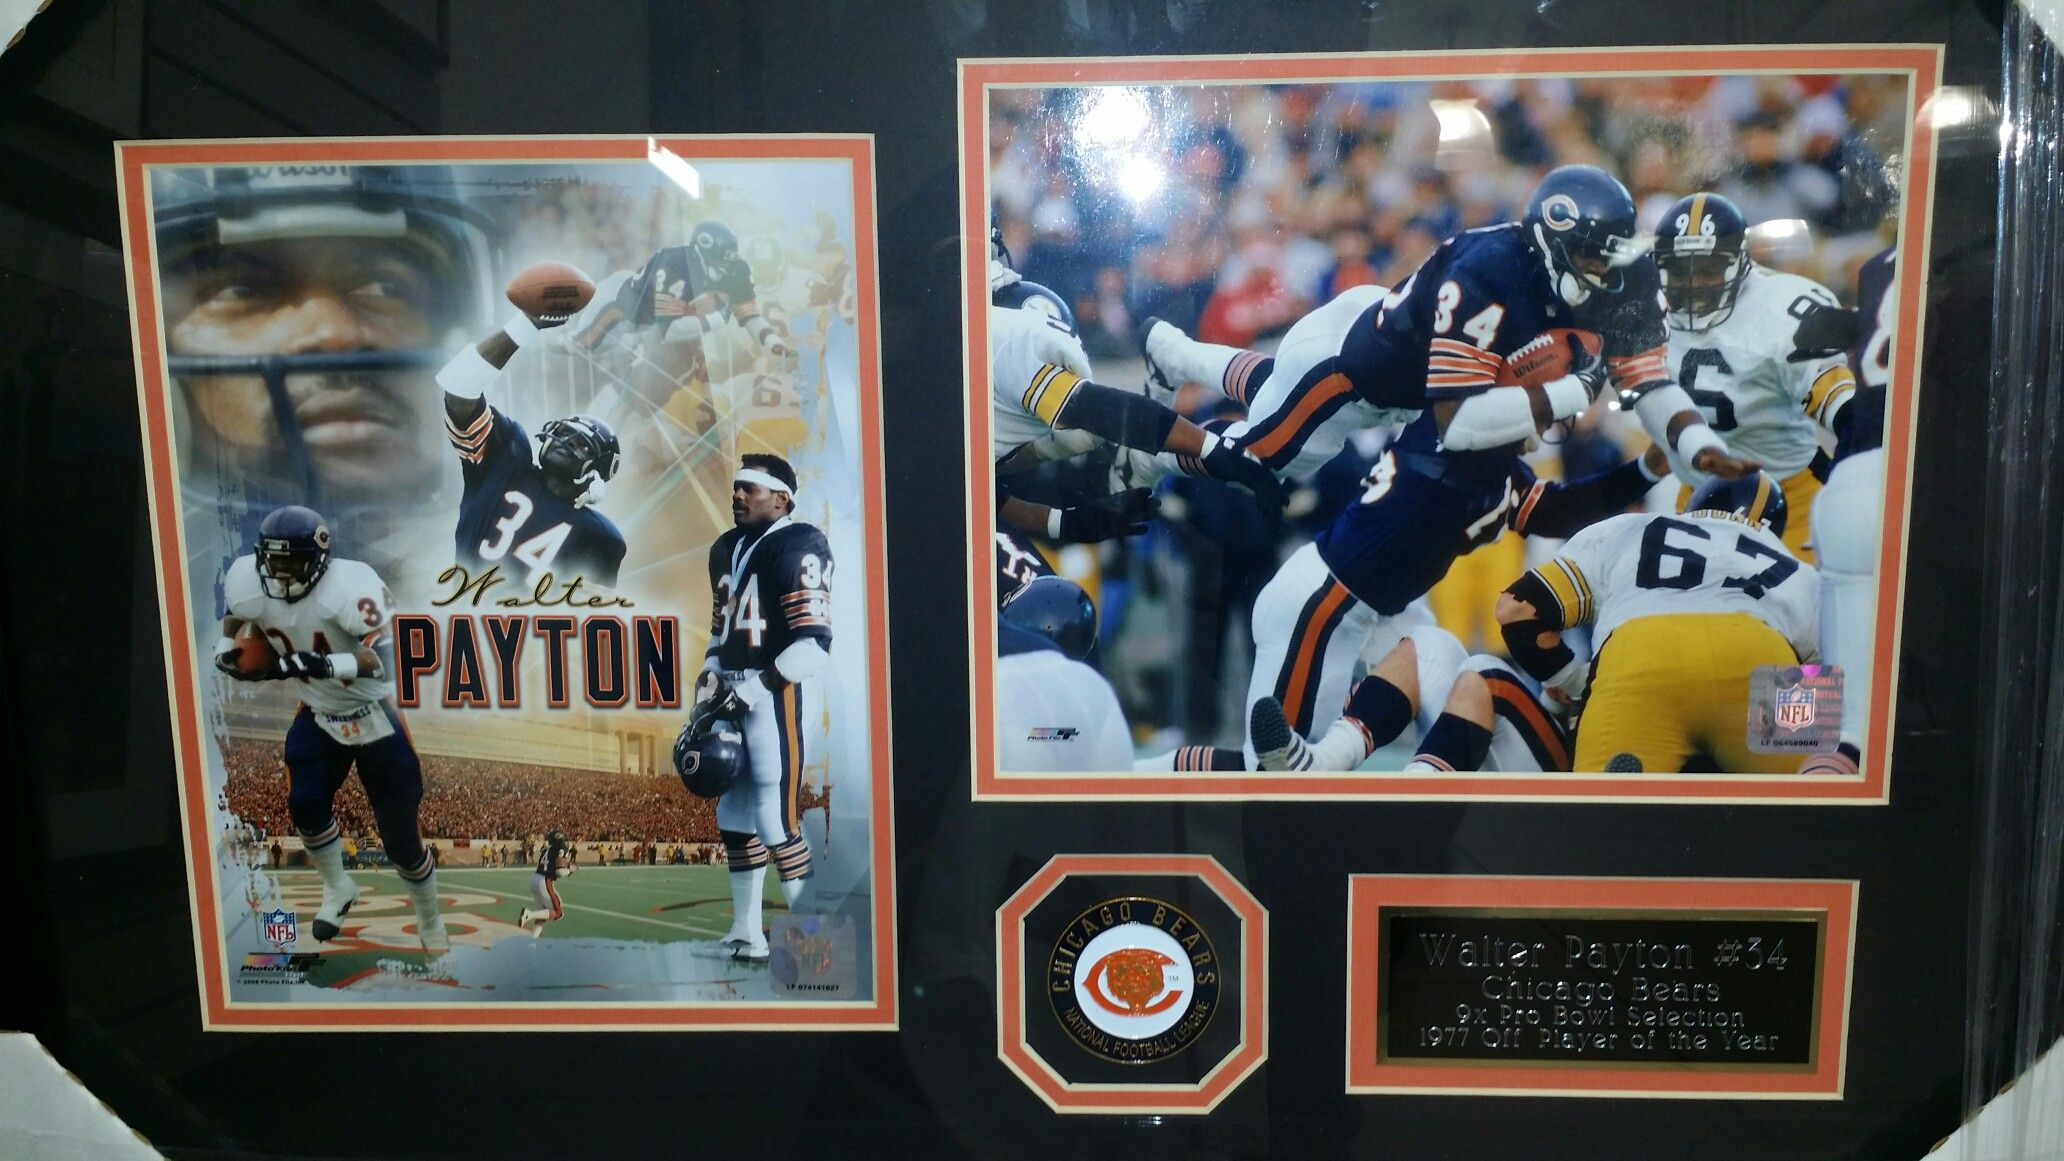 Walter payton Chicago Bears frame#football #jersey#nfl#chicago#bears ...